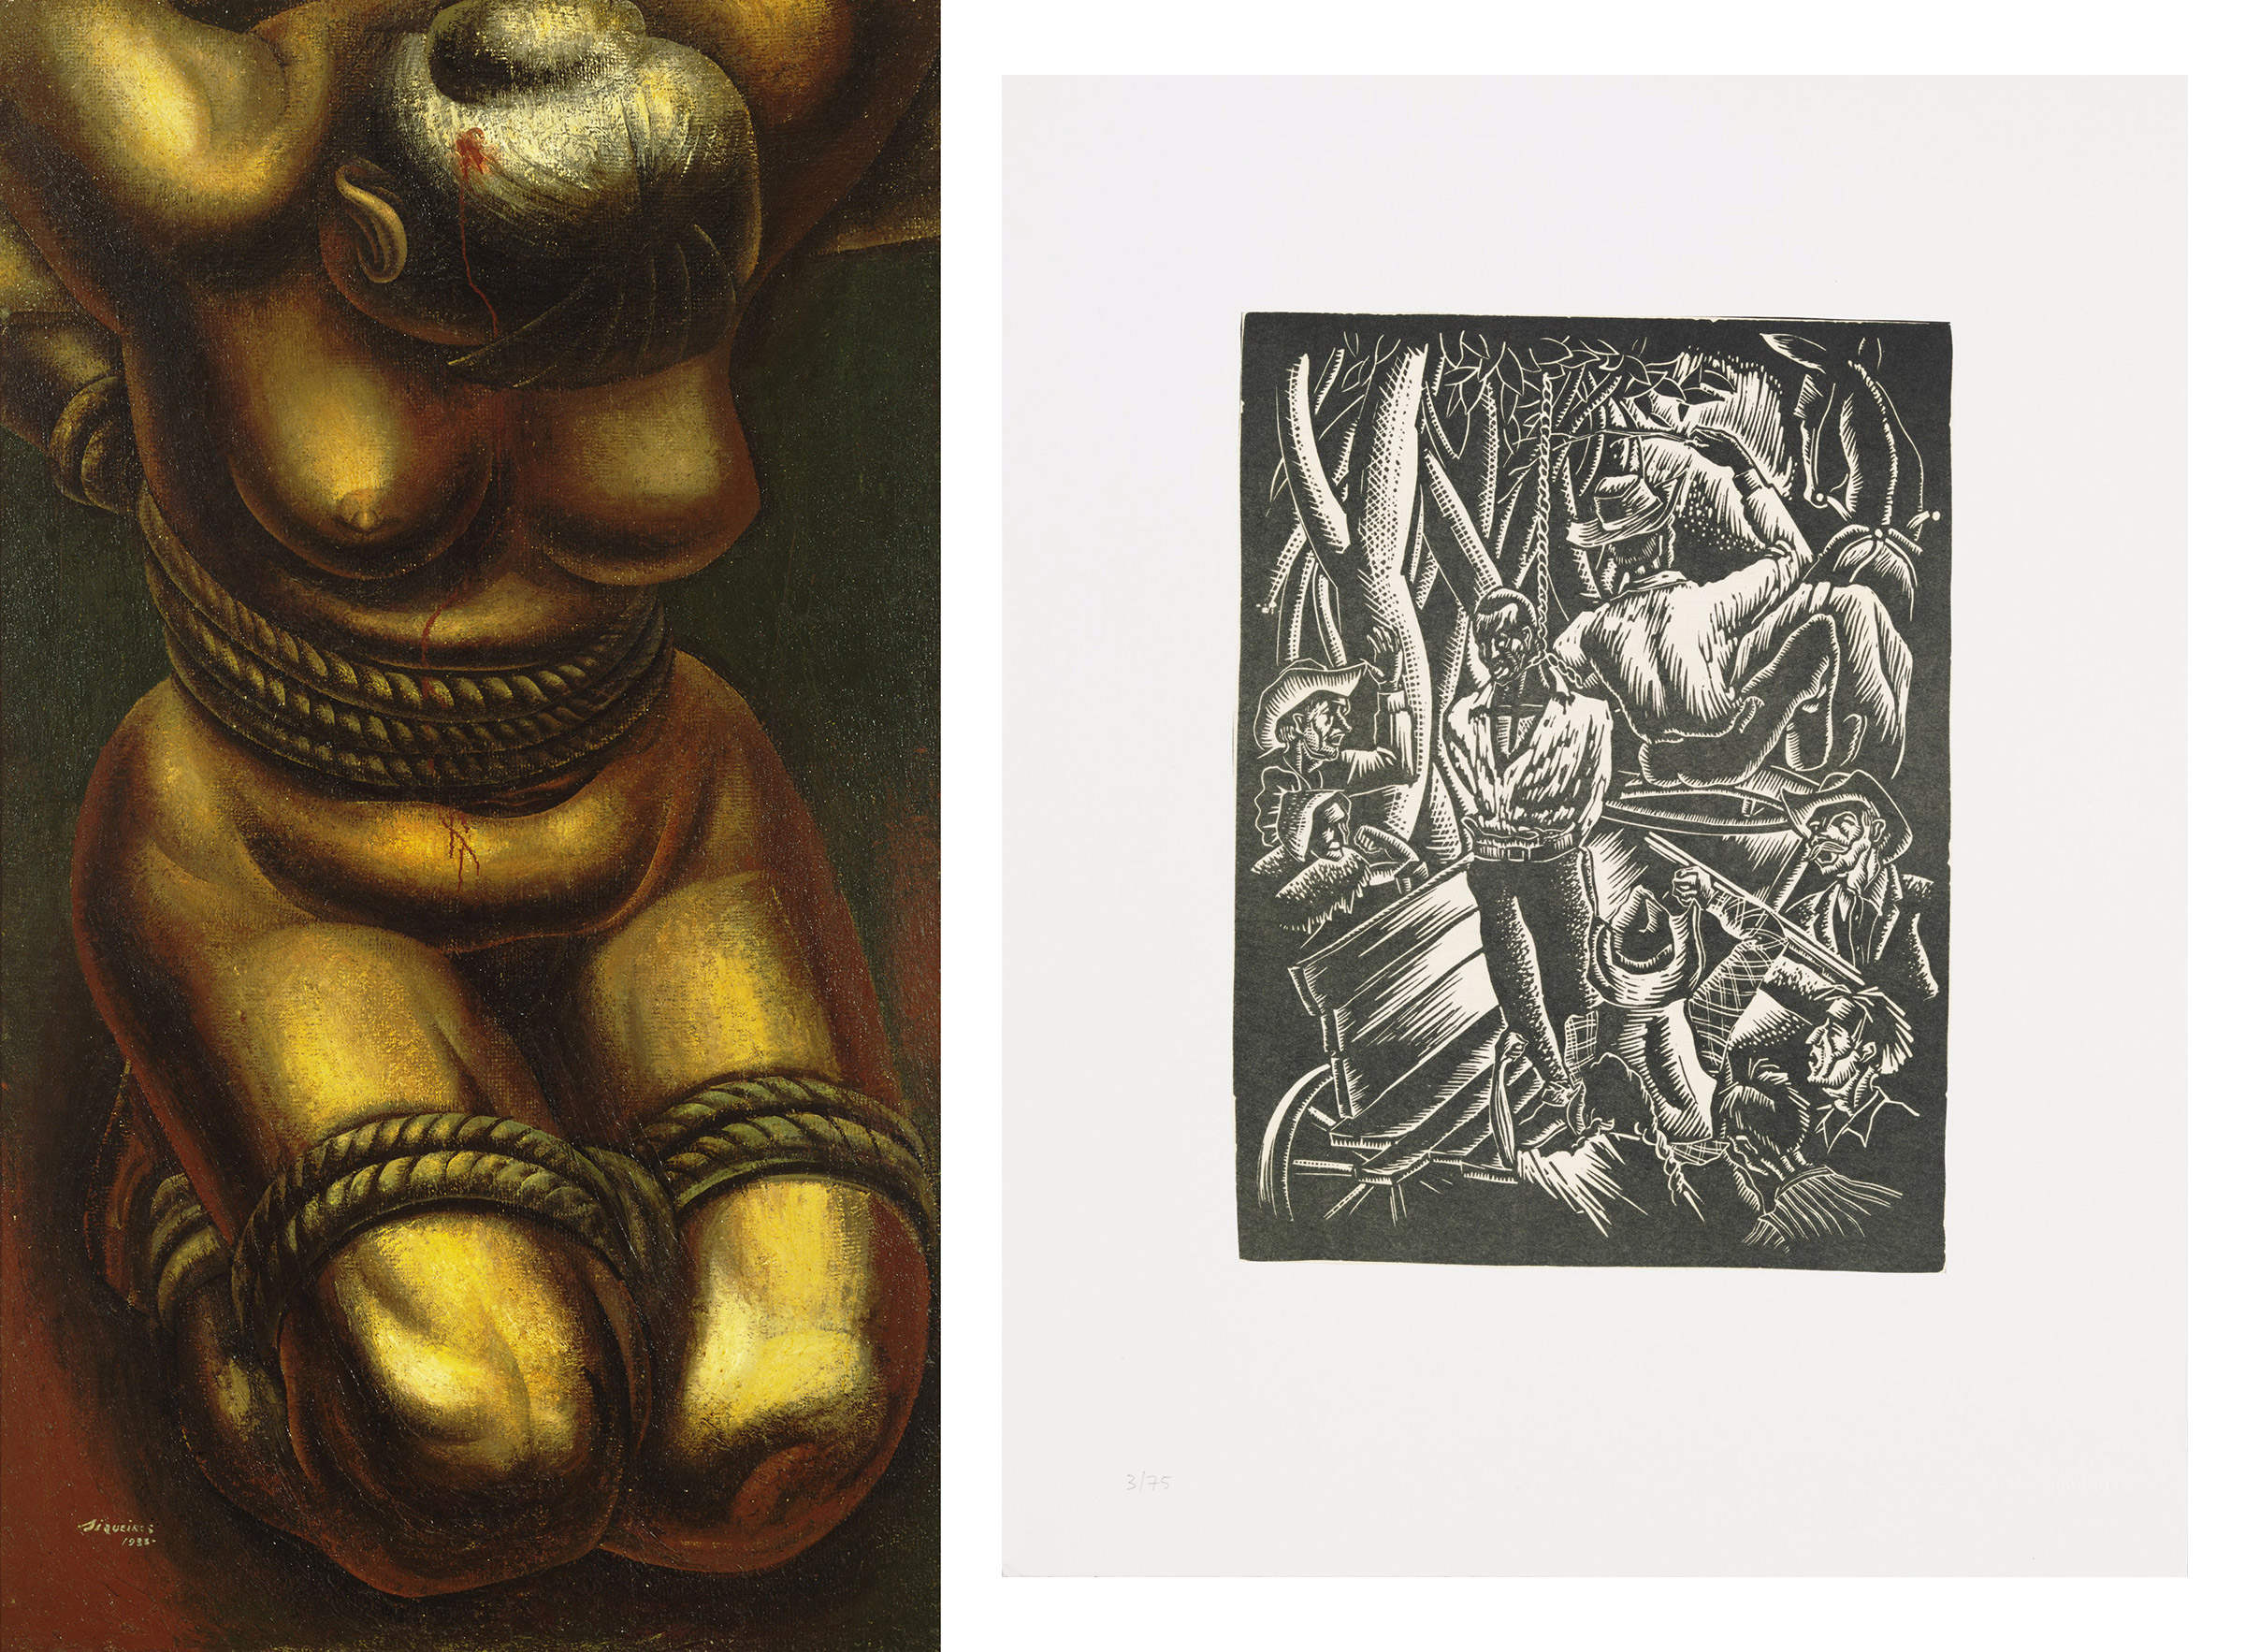 Left: David Alfaro Siqueiros, Proletarian Victim, 1933; Right: Hale Woodruff, Giddap, 1935 (printed 1996)